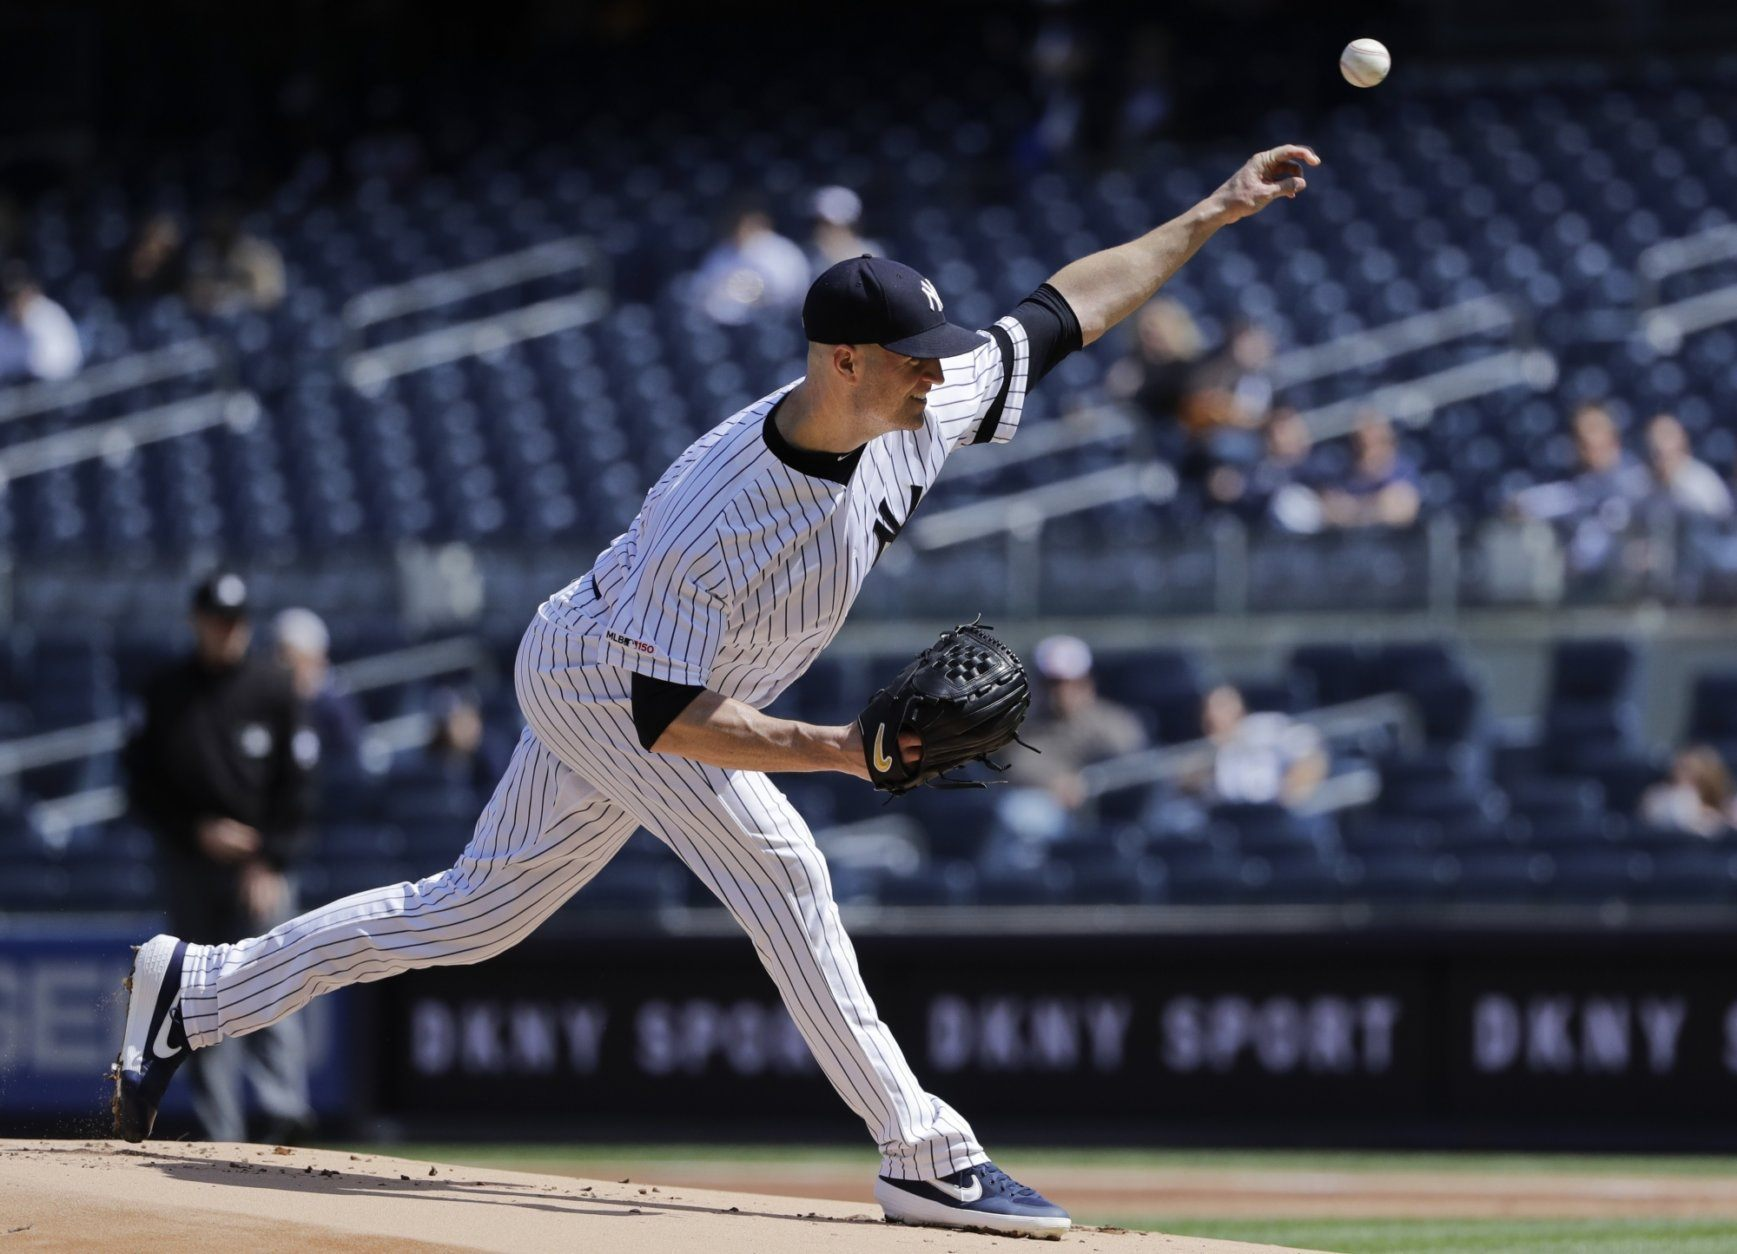 New York Yankees' J.A. Happ delivers a pitch during the first inning of a baseball game against the Baltimore Orioles Wednesday, May 15, 2019, in New York. (AP Photo/Frank Franklin II)